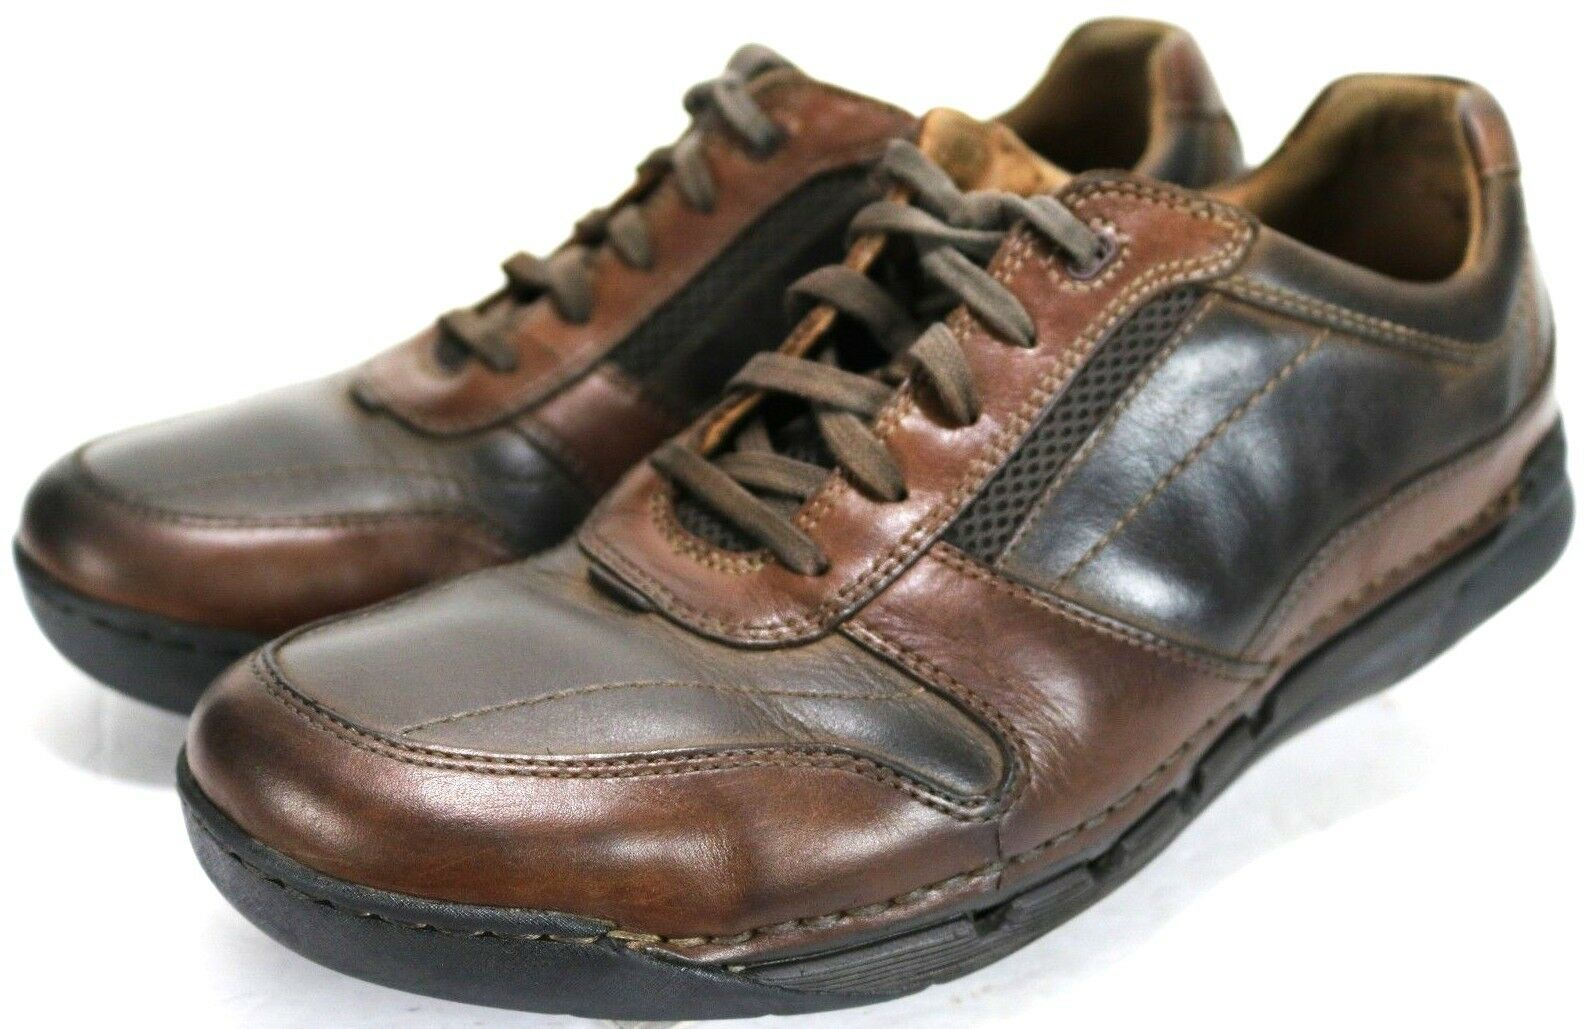 Clarks Unstructured  Men's Casual Sneakers shoes Size 10 Wide Leather Brown